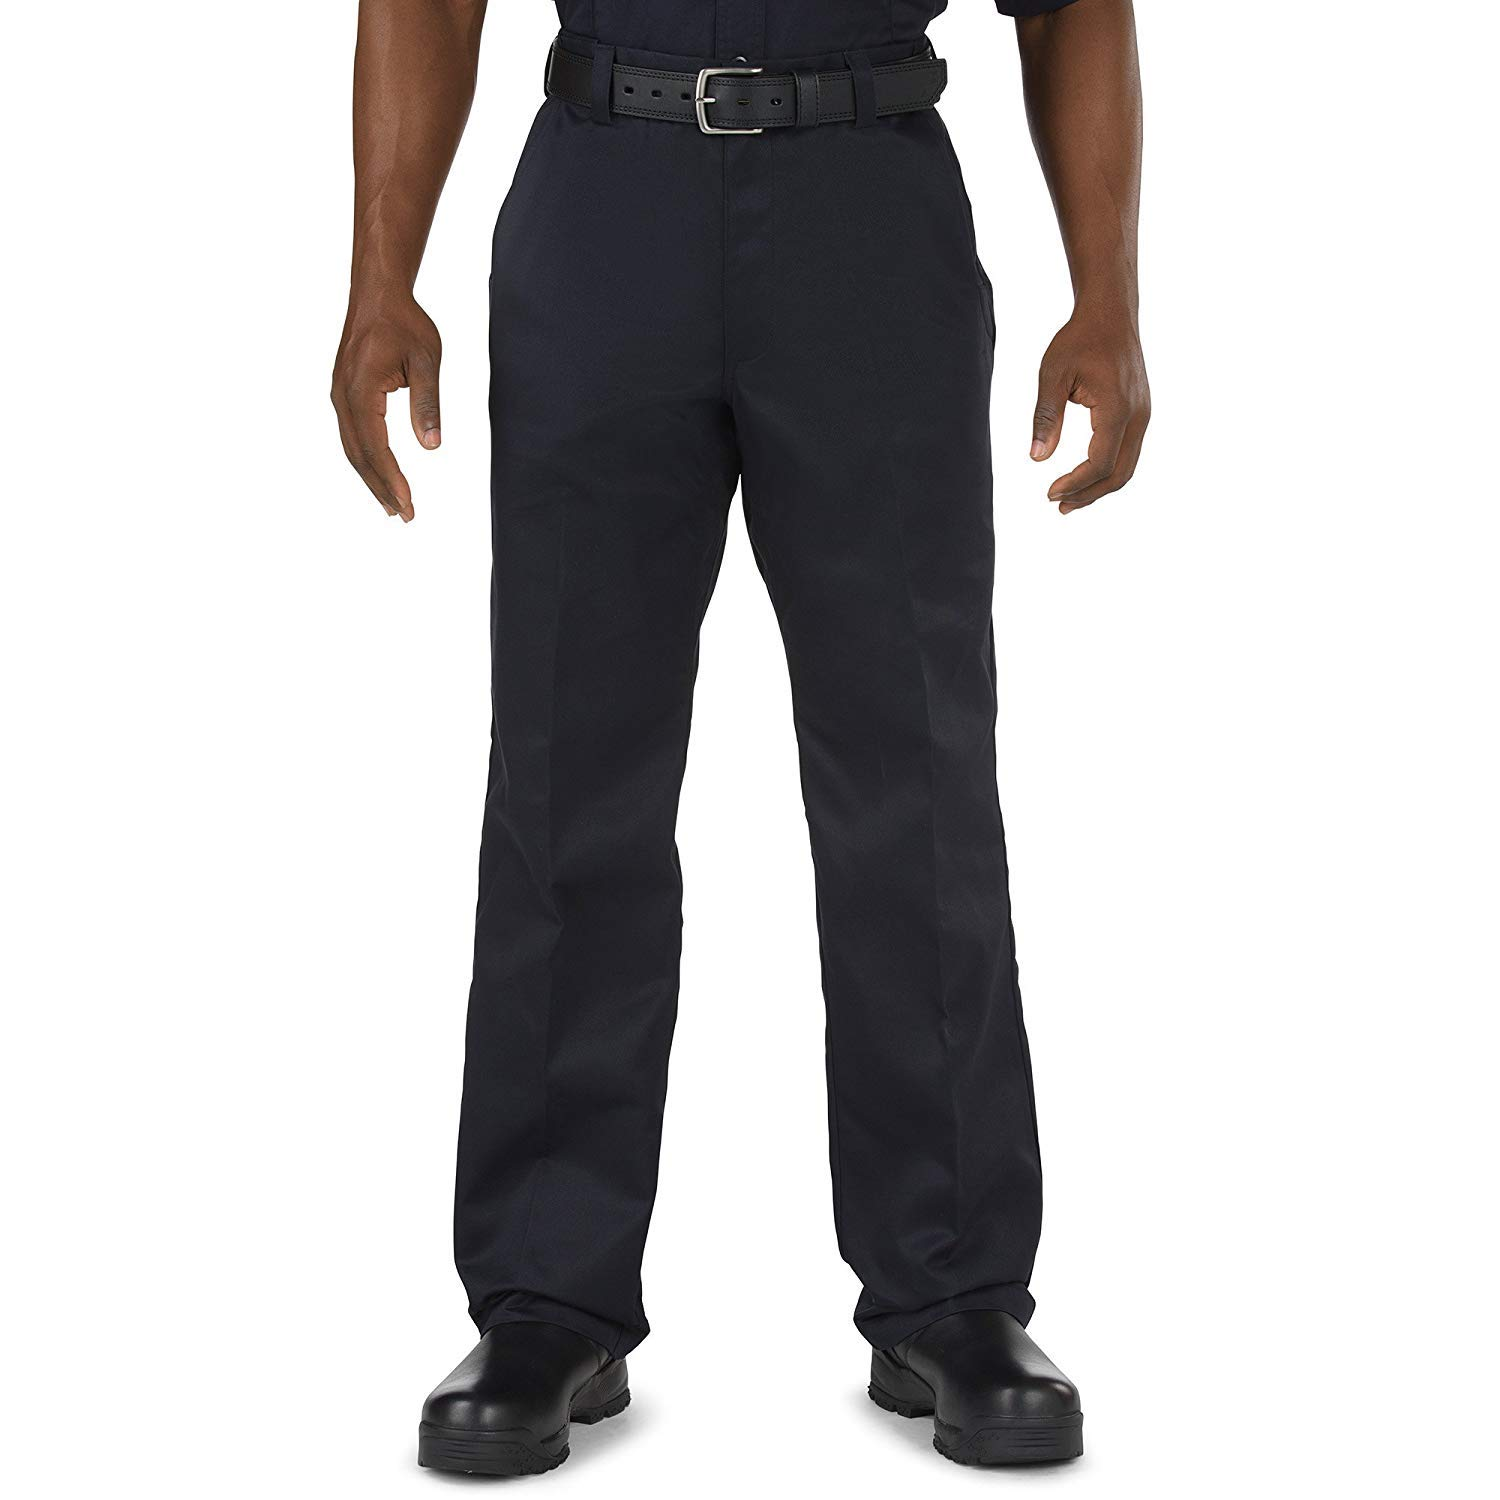 5.11 Tactical Men's Company Work Casual Pants, 100% Cotton Twill Wrinkle-Resistant Fabric, Fire Navy Blue, Style 74398